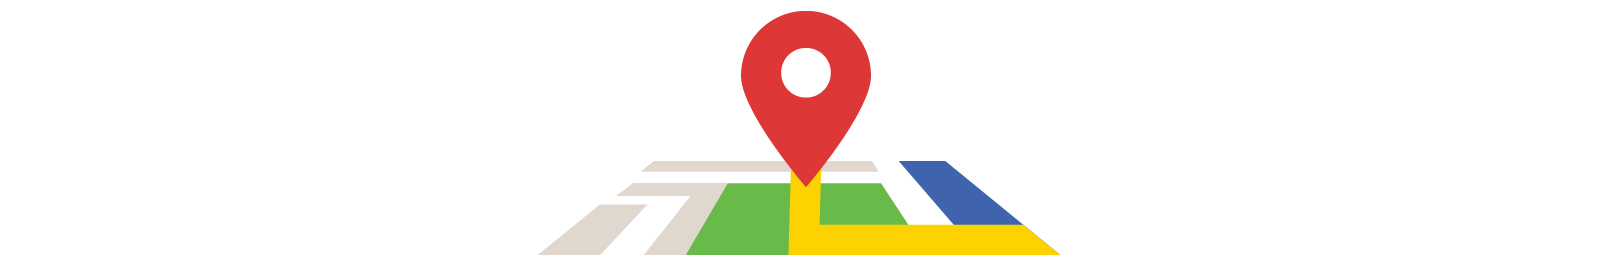 Understanding SEO: How Google Ranks Local Search Results - Local Business Results